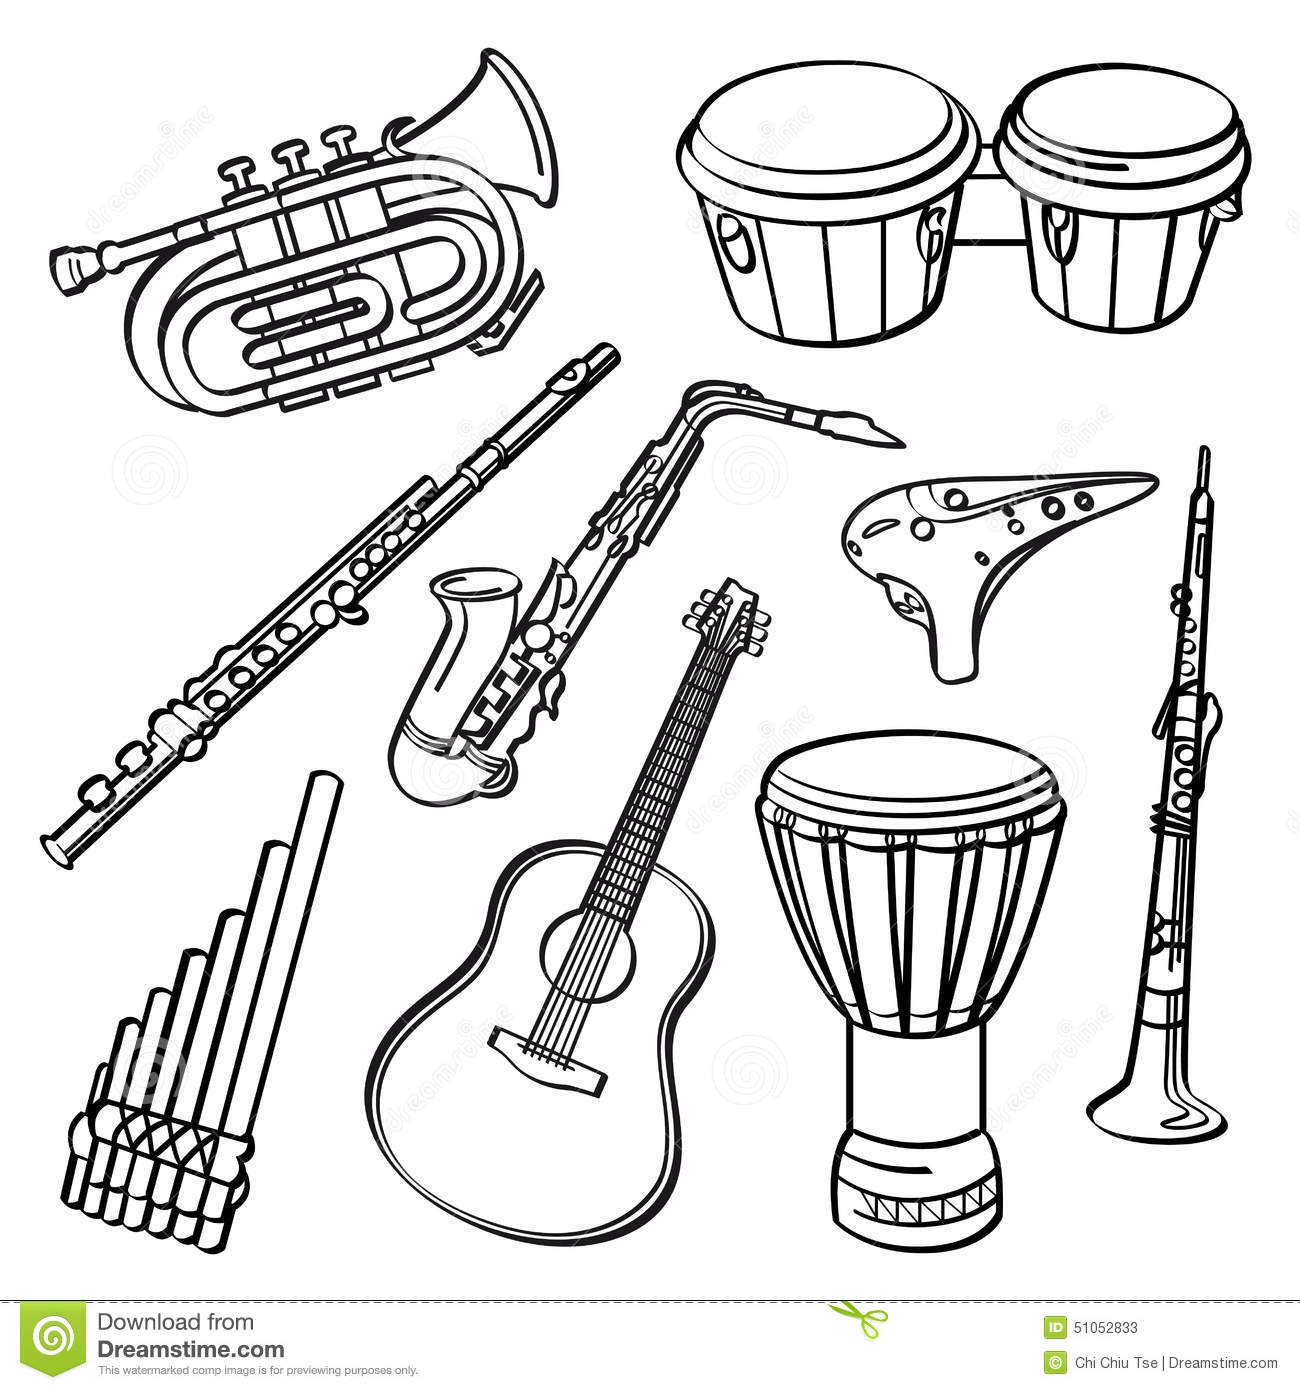 Musical instruments pictures pdf converter